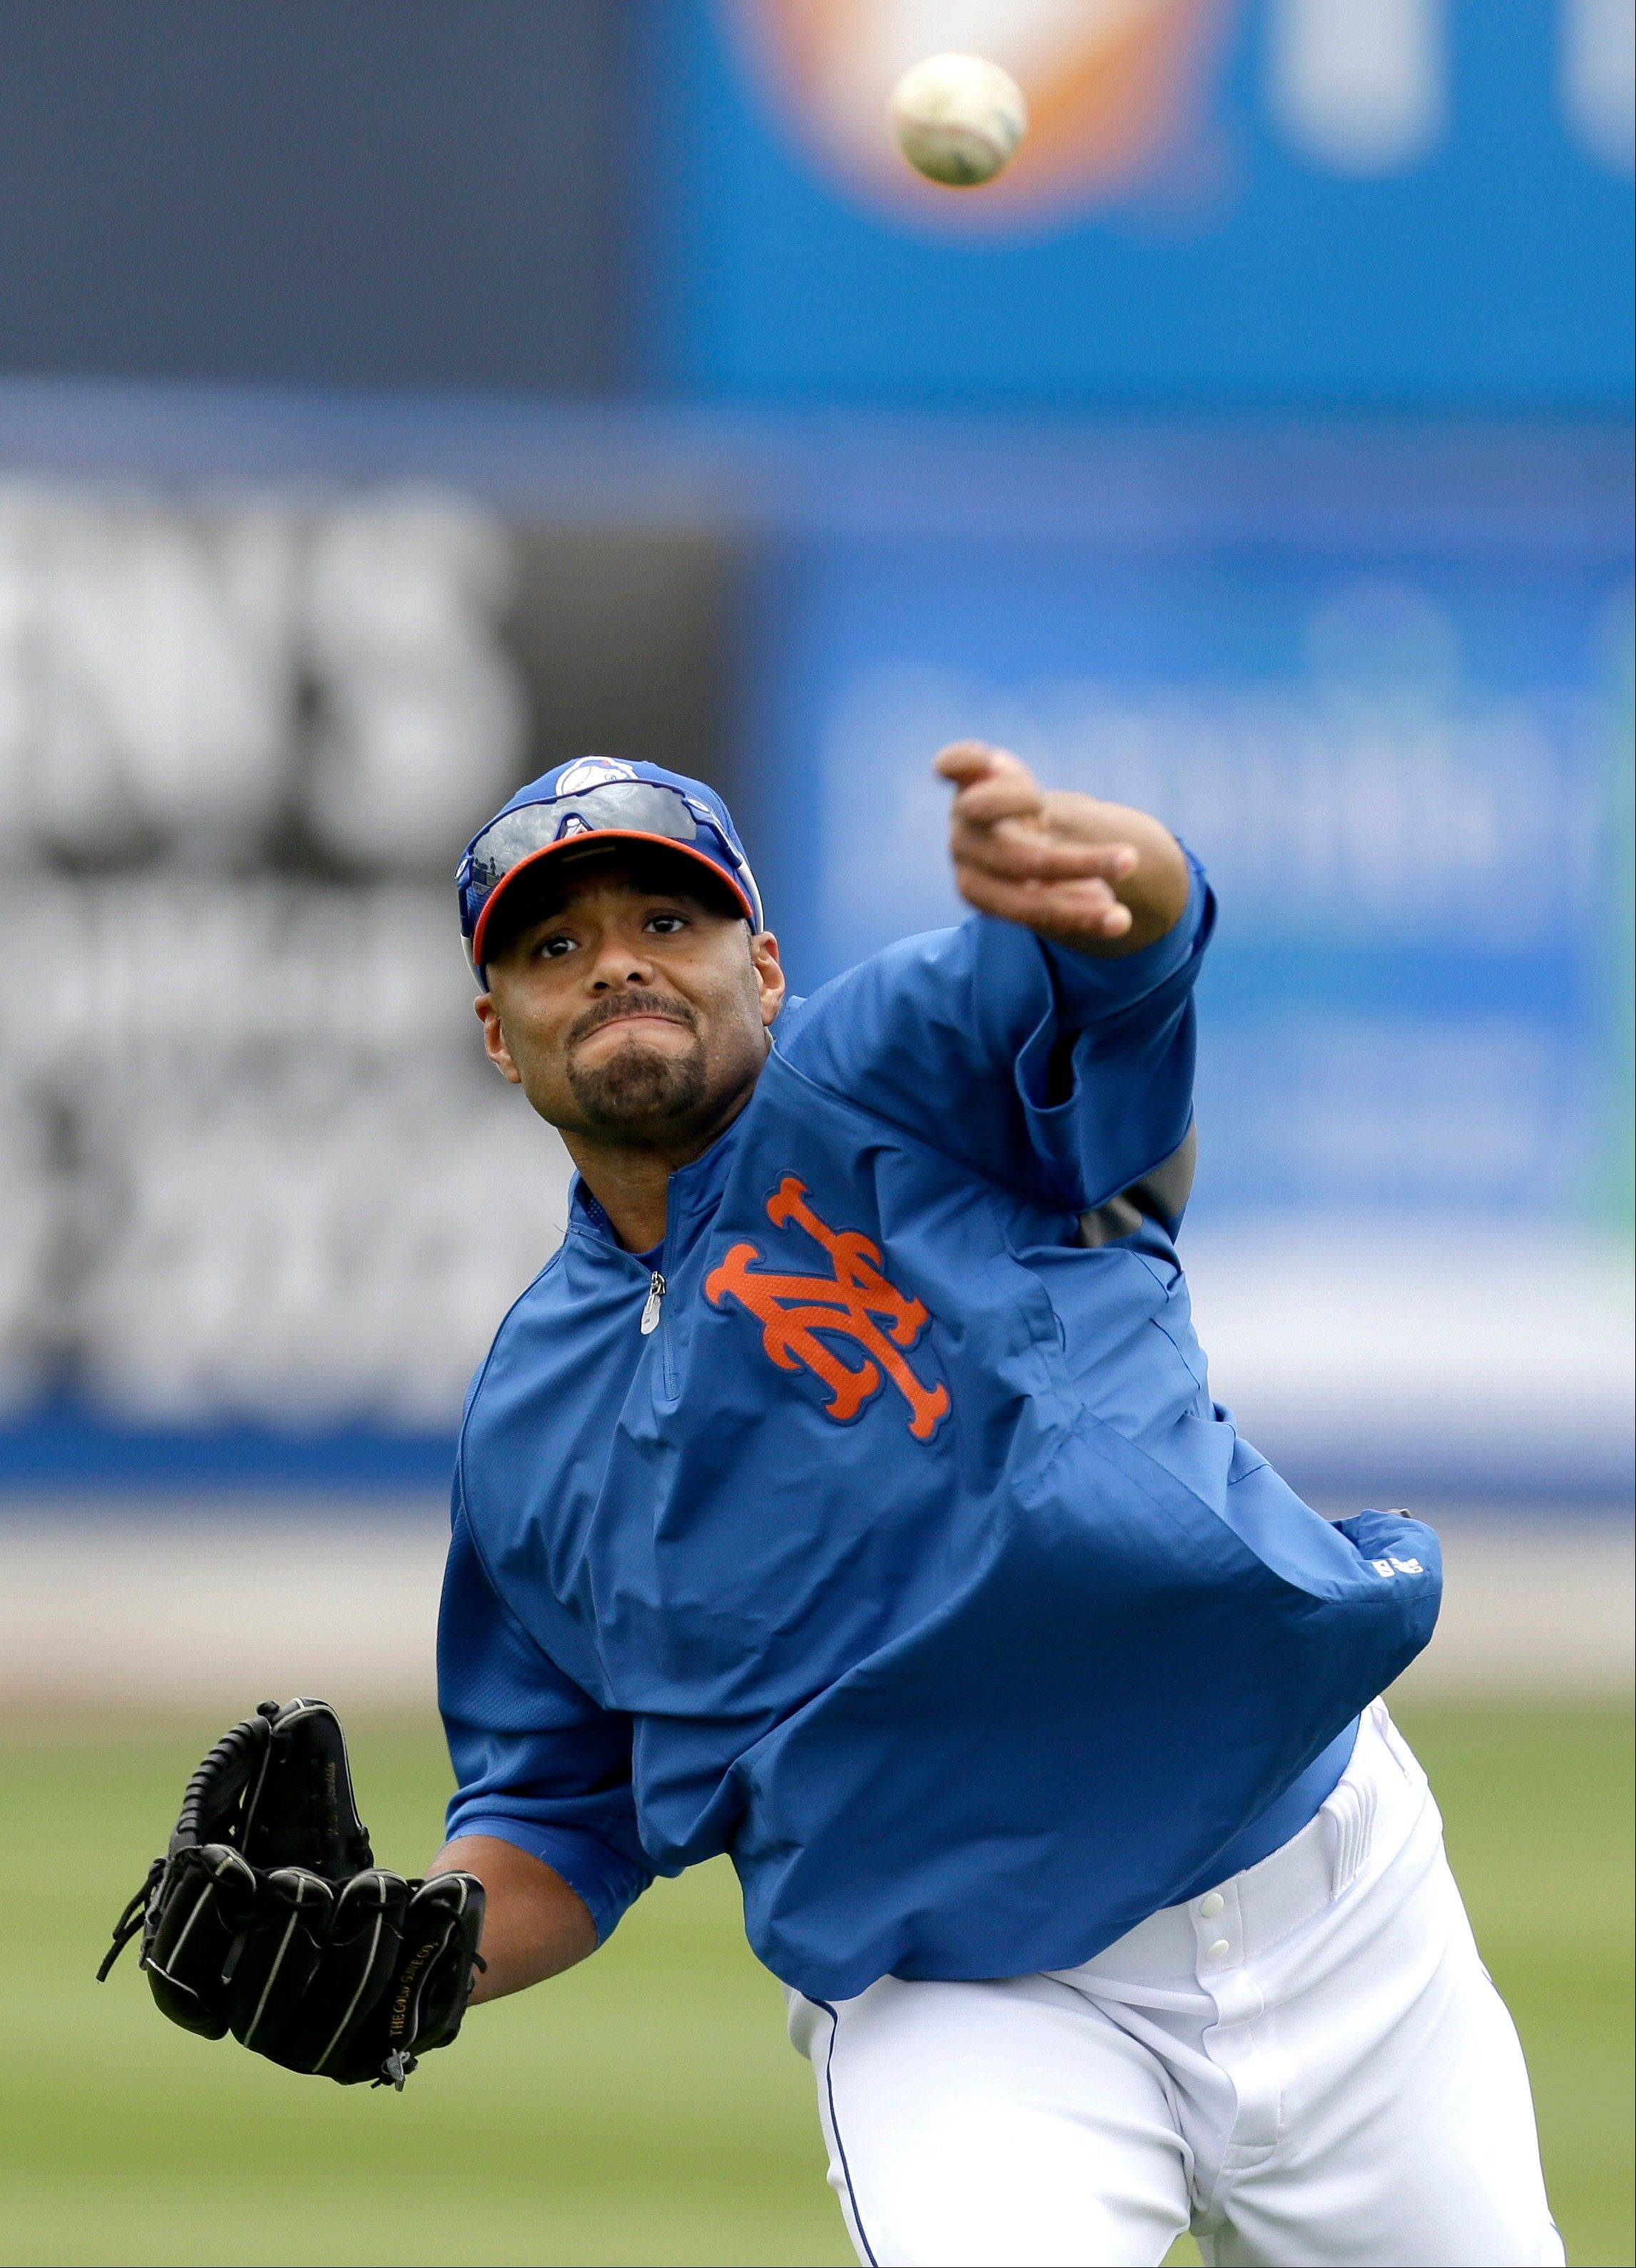 Mets pitcher Johan Santana had surgery April 2 for a tear in the capsule in the front of his left shoulder.